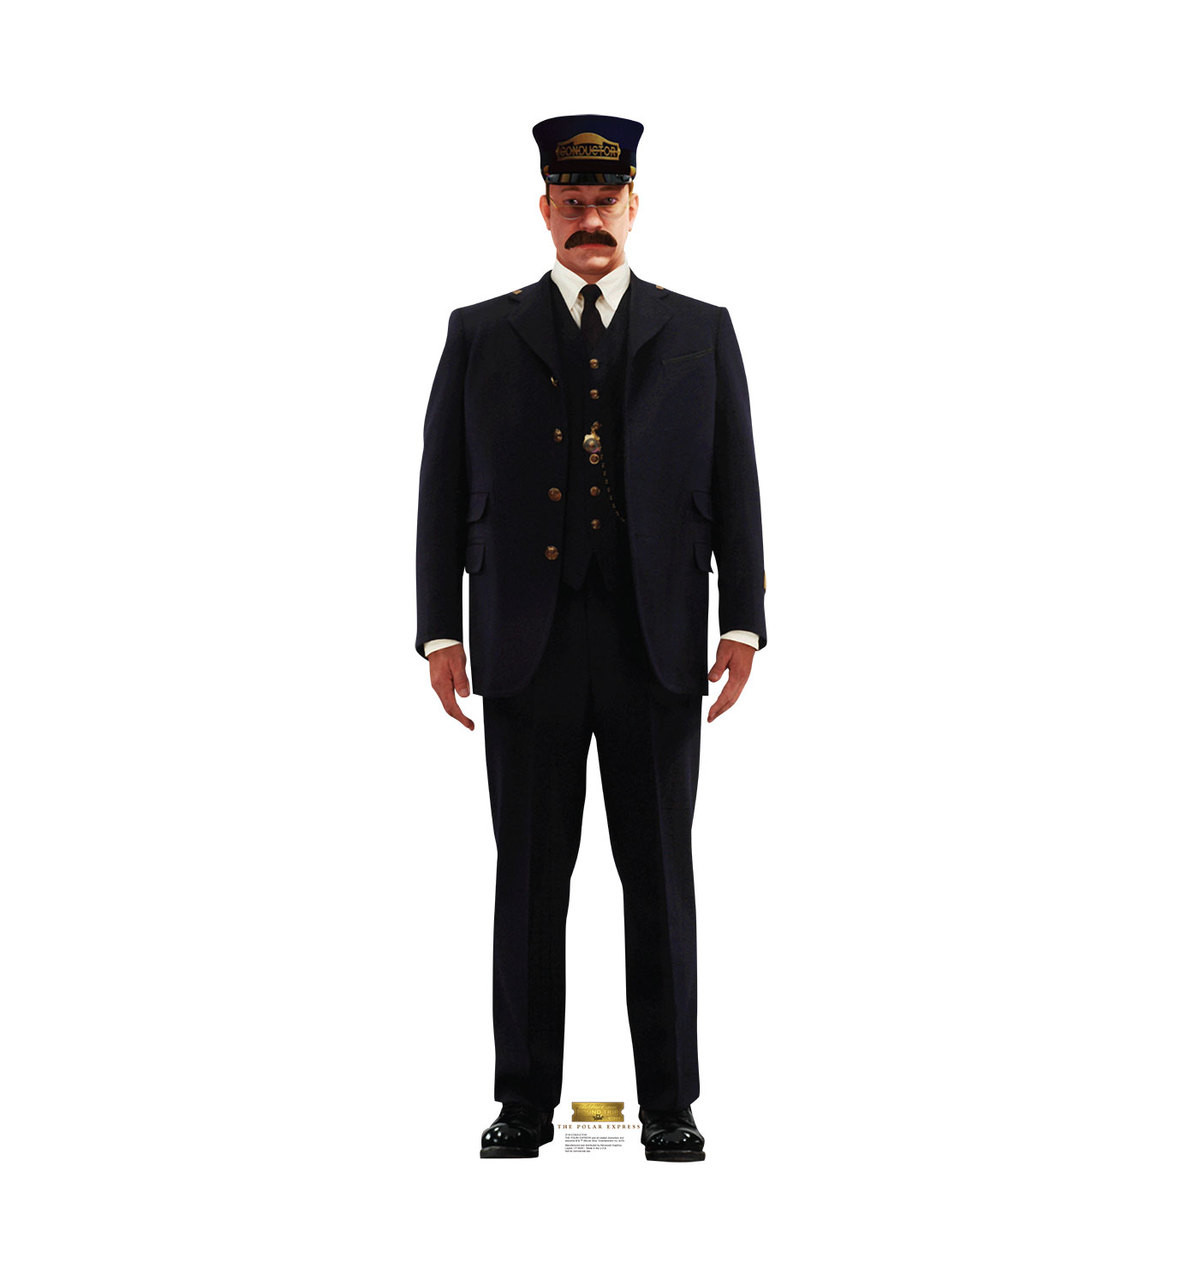 Life-size Conductor - The Polar Express Cardboard Standup